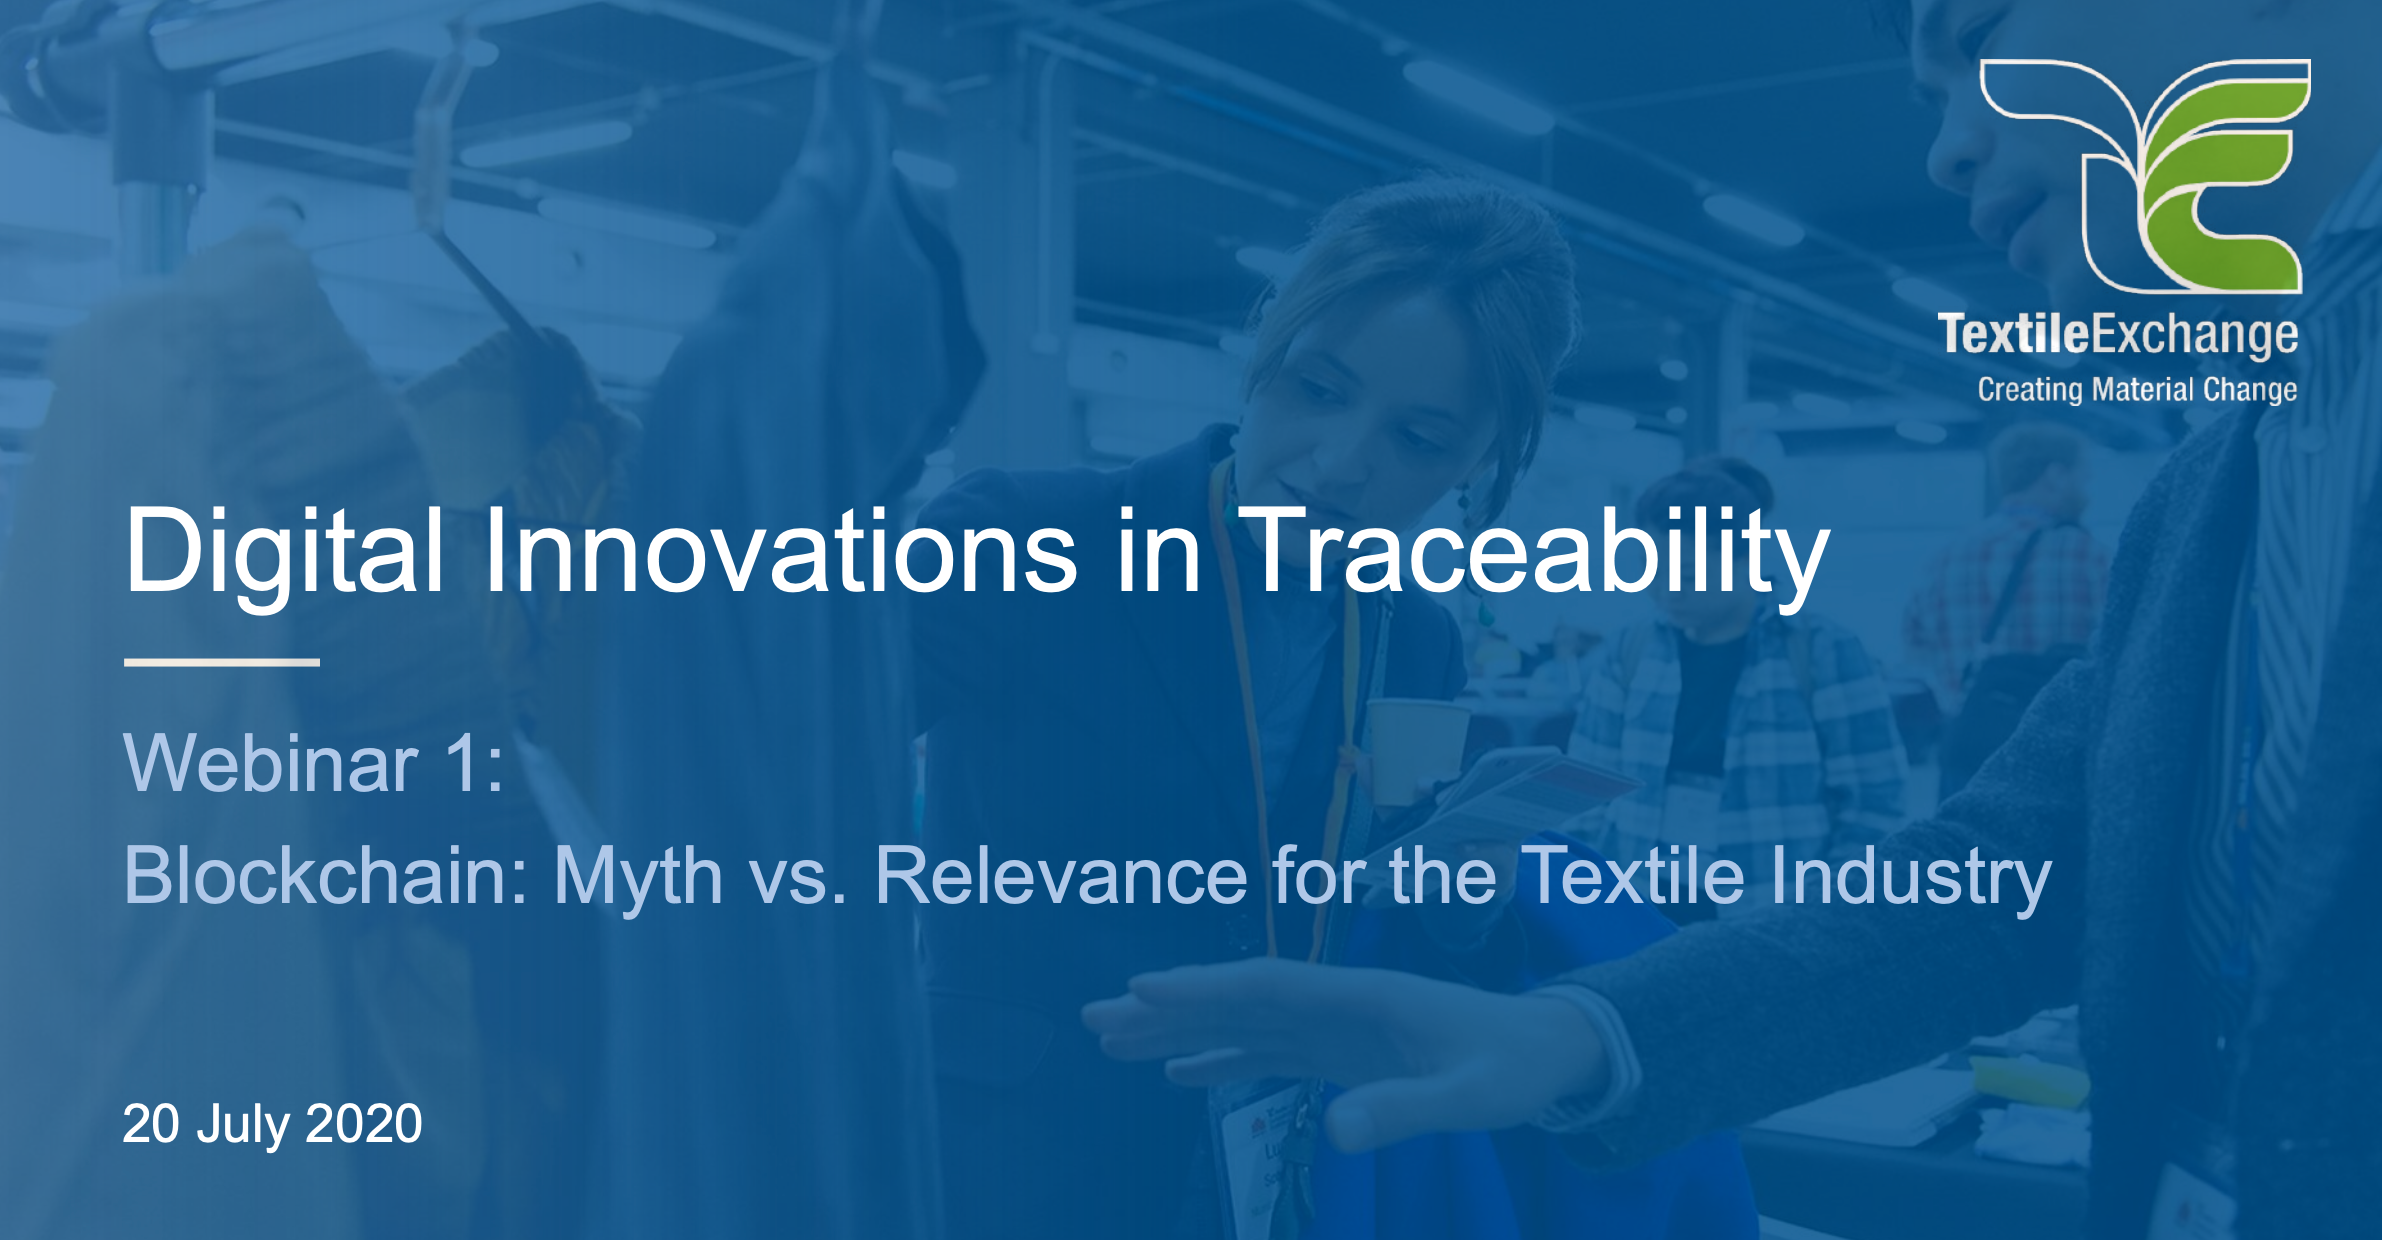 Blockchain Myths vs. Relevance for the textile industry